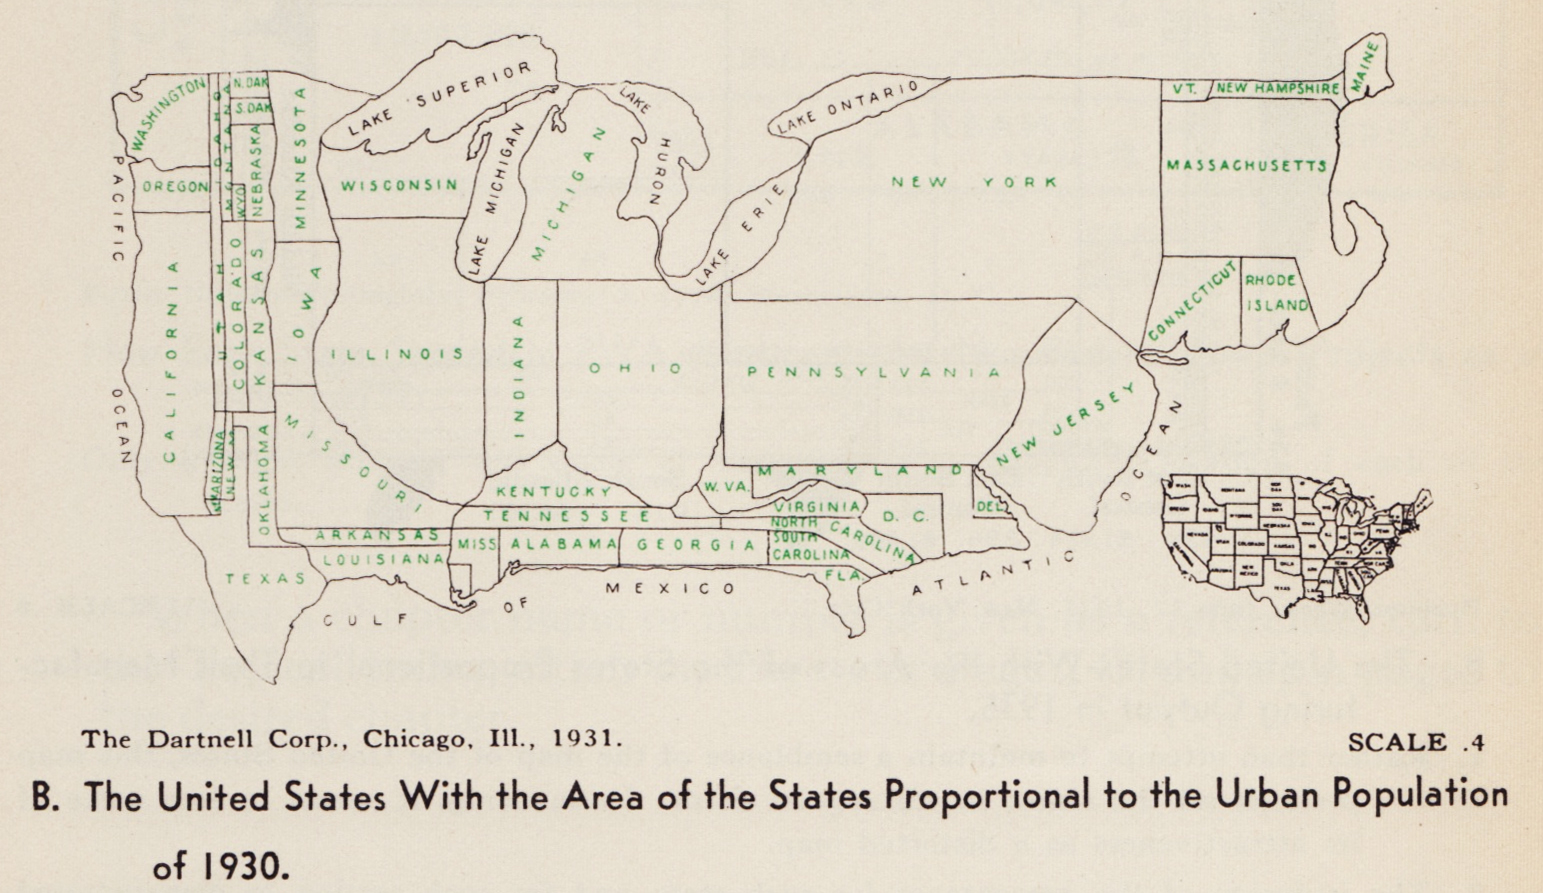 cartogram 1931 the united states with the area of the states proportional to the urban population